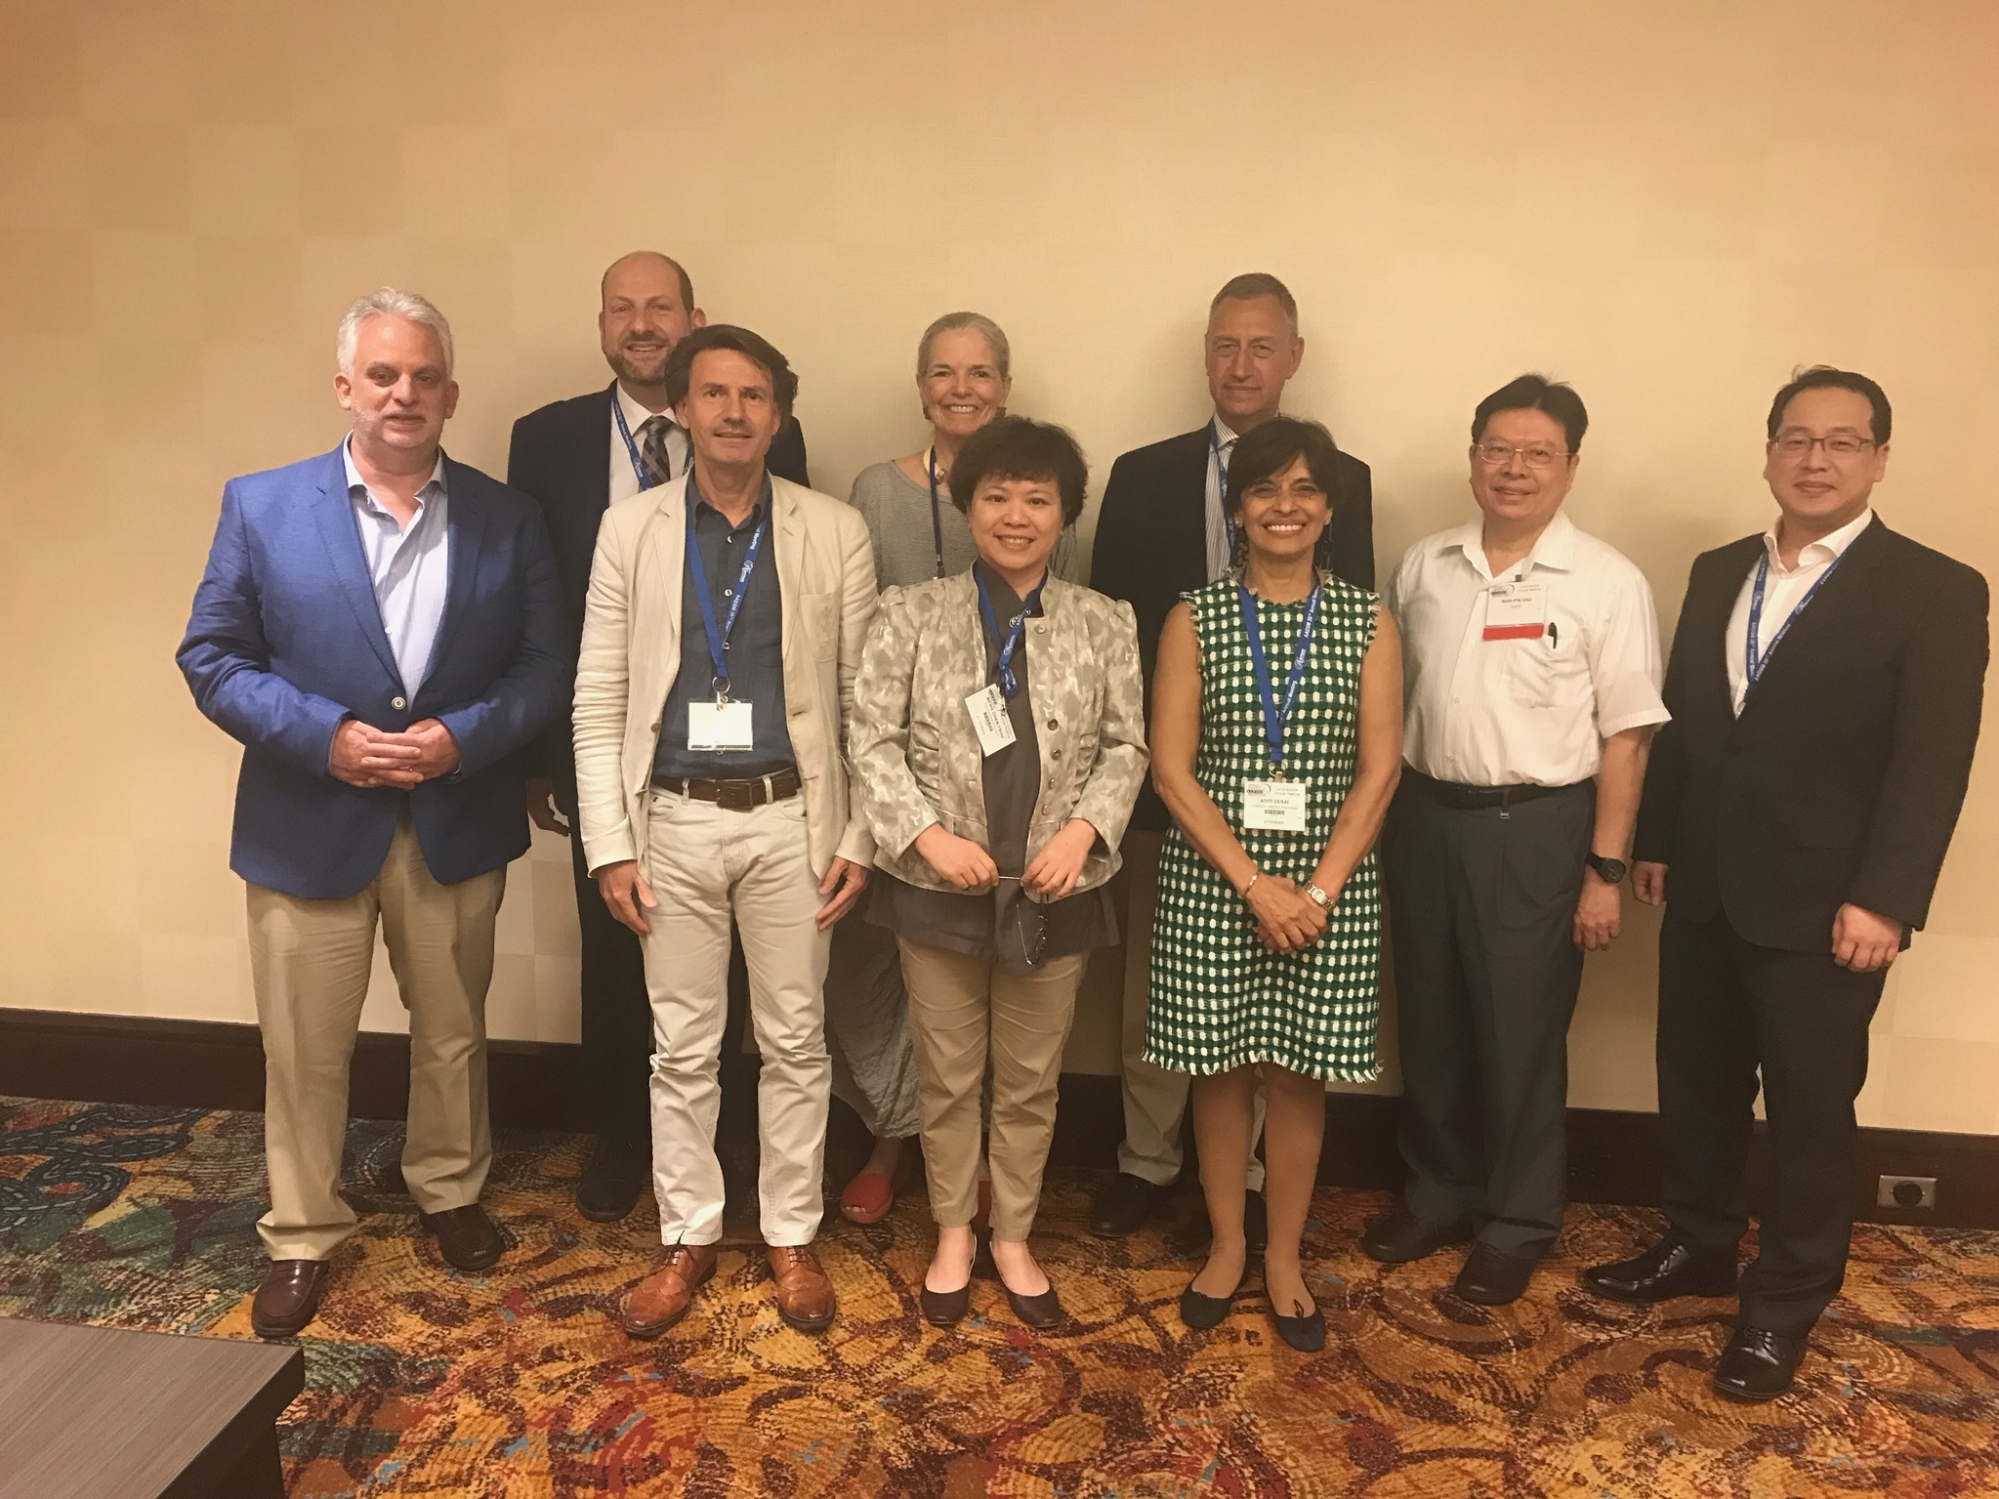 Leaders from dental sleep medicine organizations in 7 countries at the 2019 AADSM annual meeting